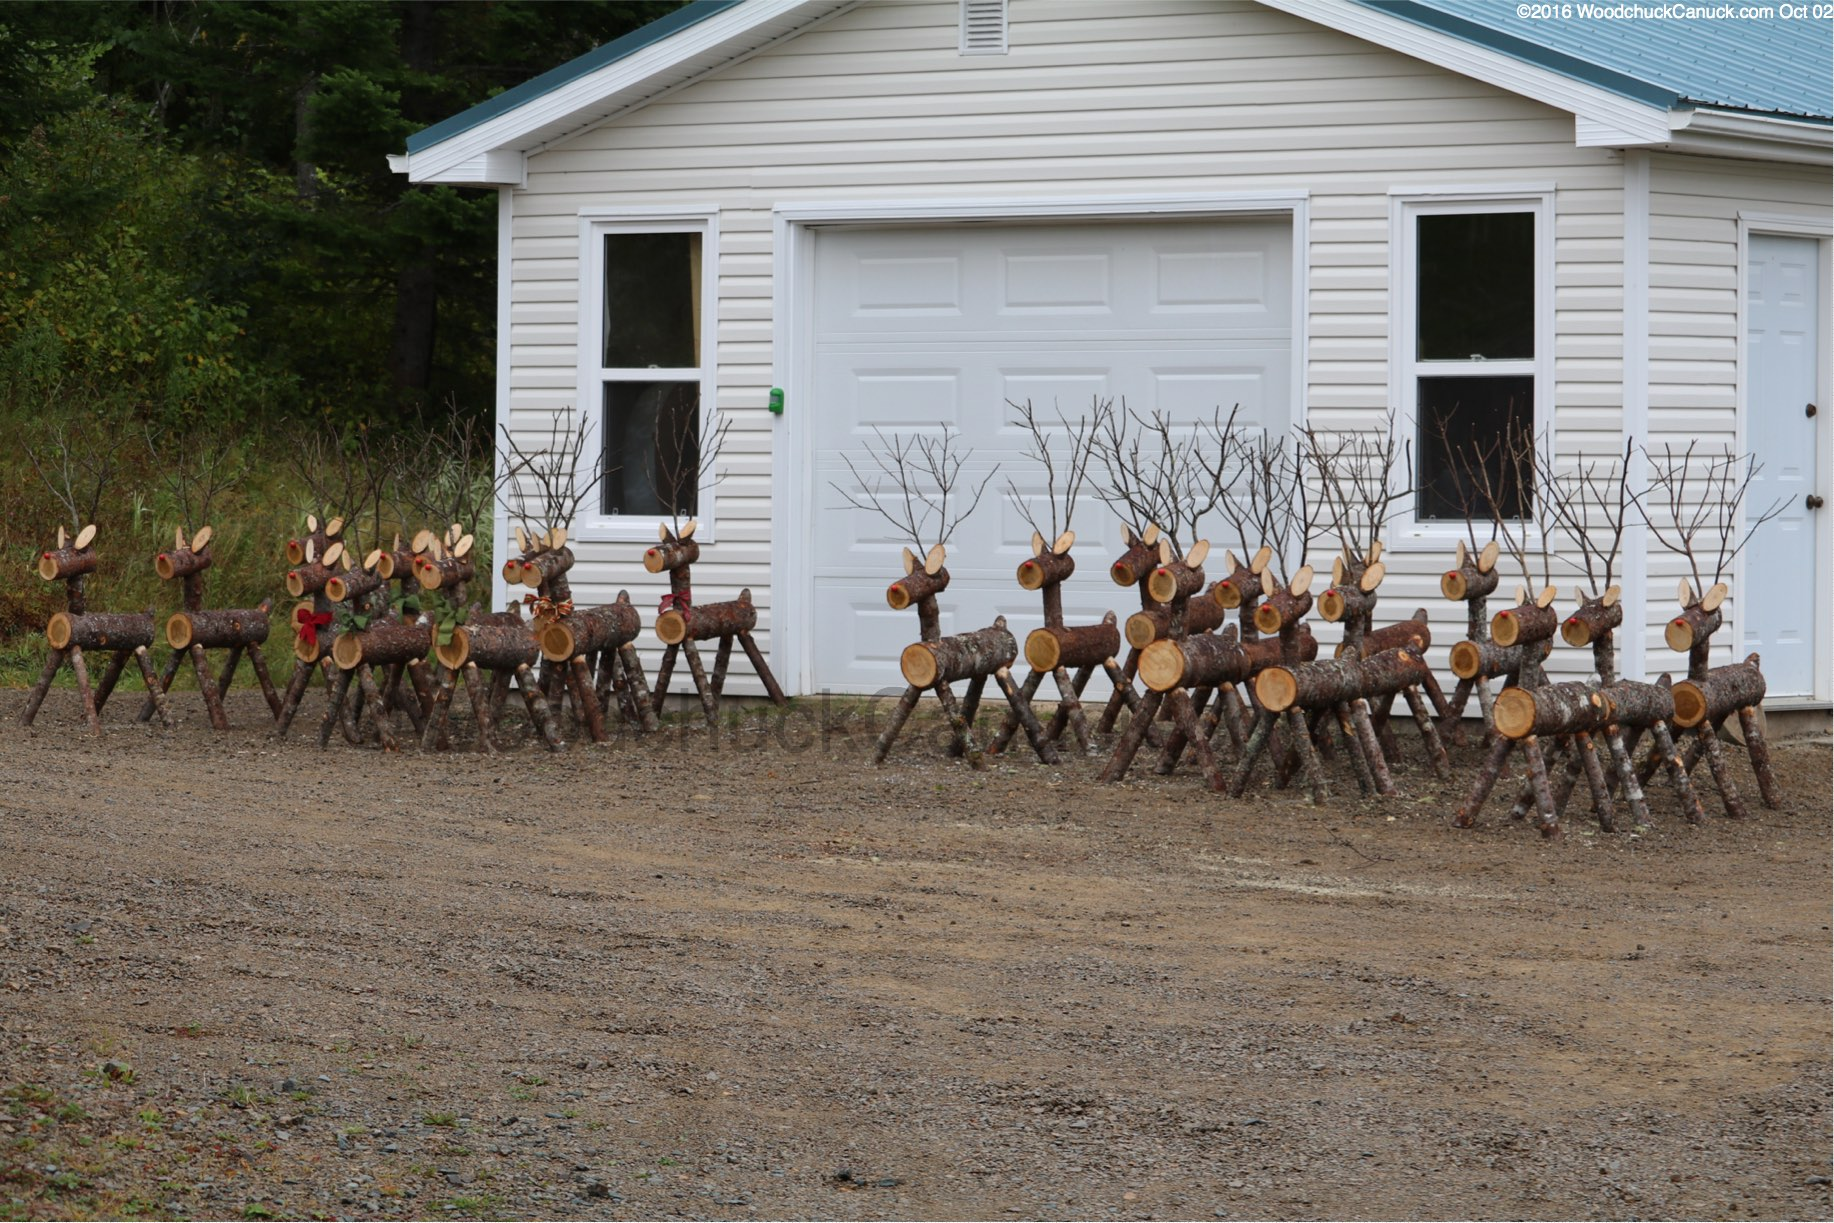 Log Crafts Log Reindeer Woodchuckcanuckcom